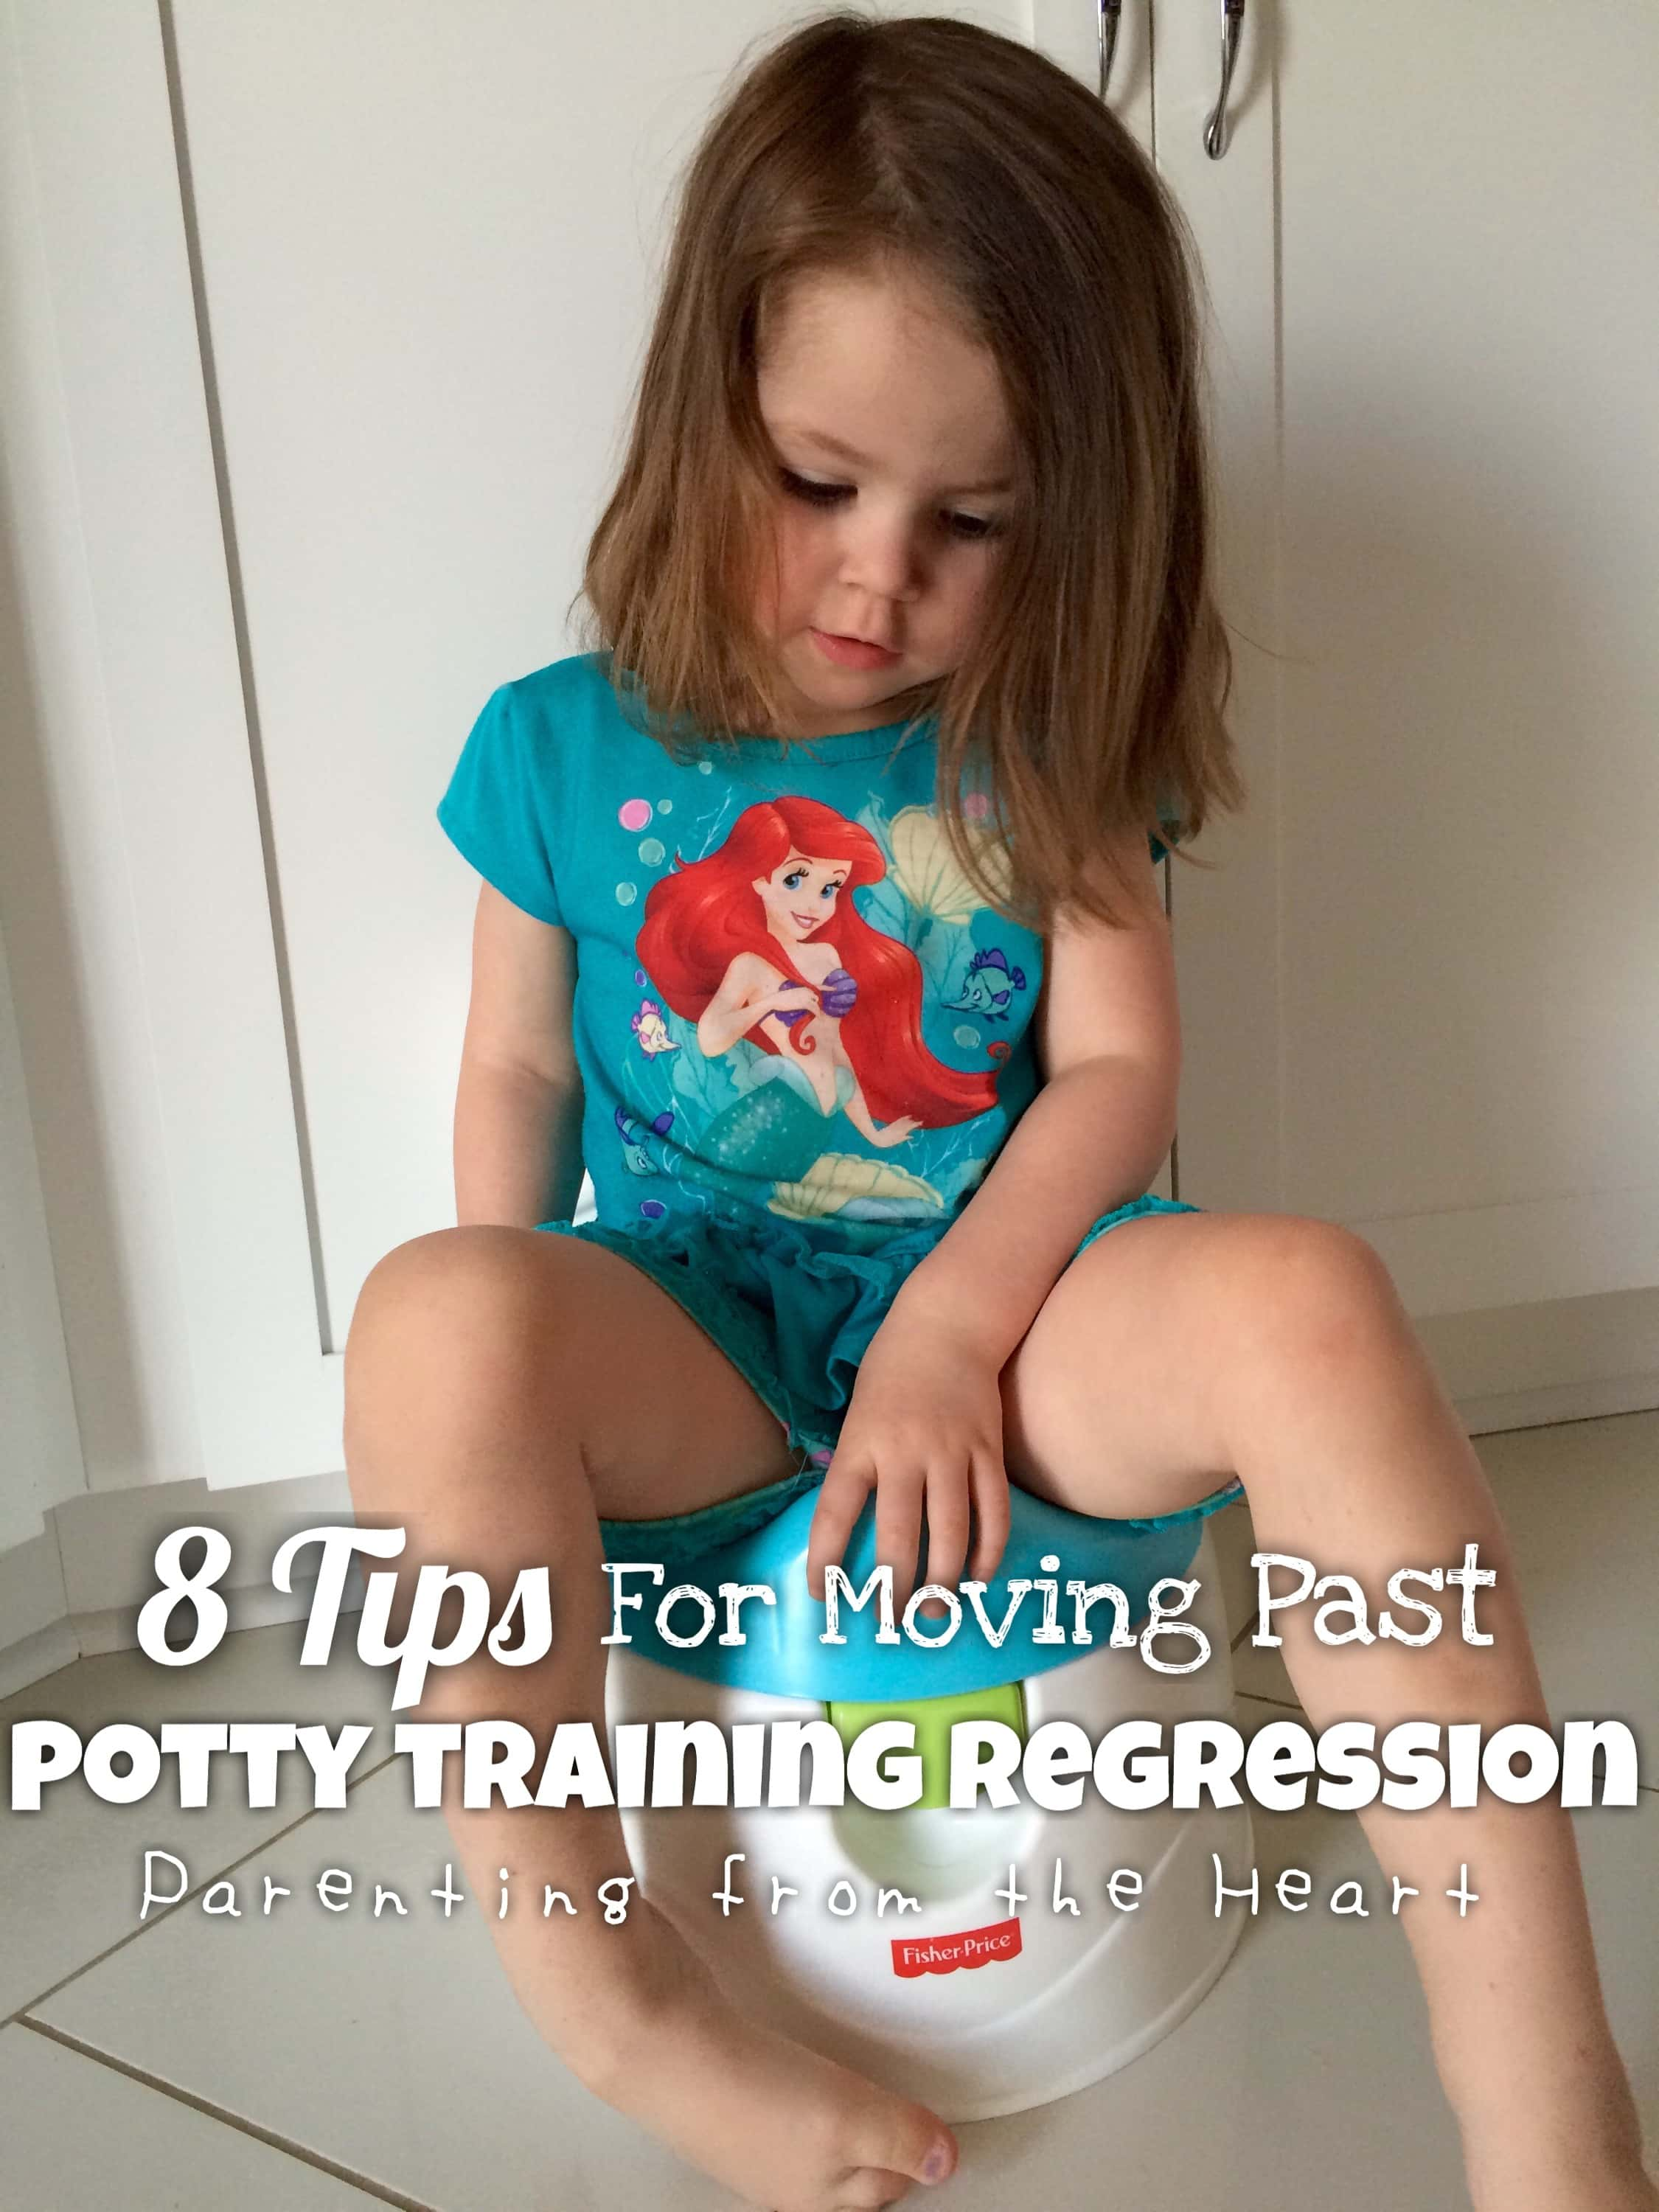 Potty training is no easy feet, especially when your child regresses (and then maybe regresses again). See tips and resources on potty training regressions.